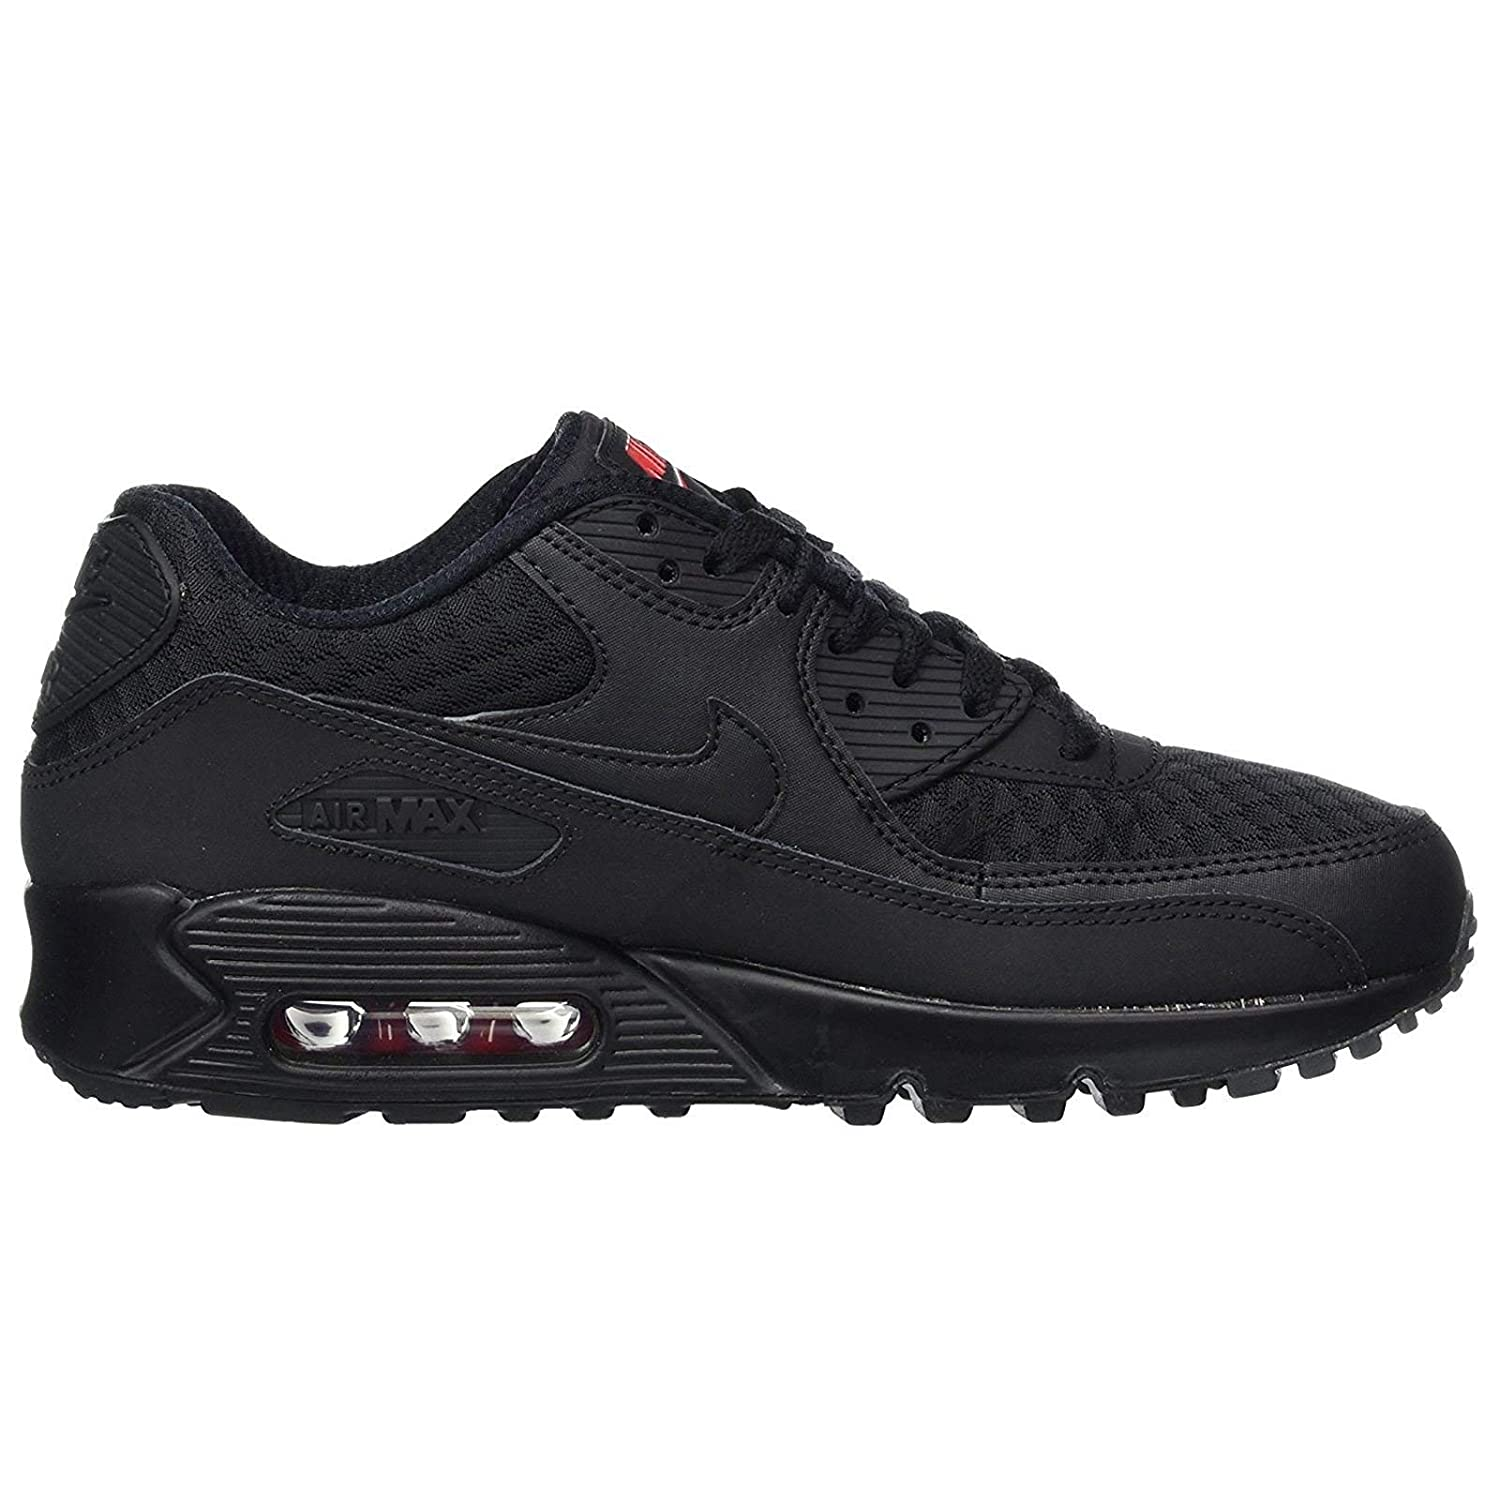 3c4d6a1f7f Nike Mens Air Max 90 Essential - Black, 6.5 UK (40.5 EU): Amazon.co.uk:  Shoes & Bags